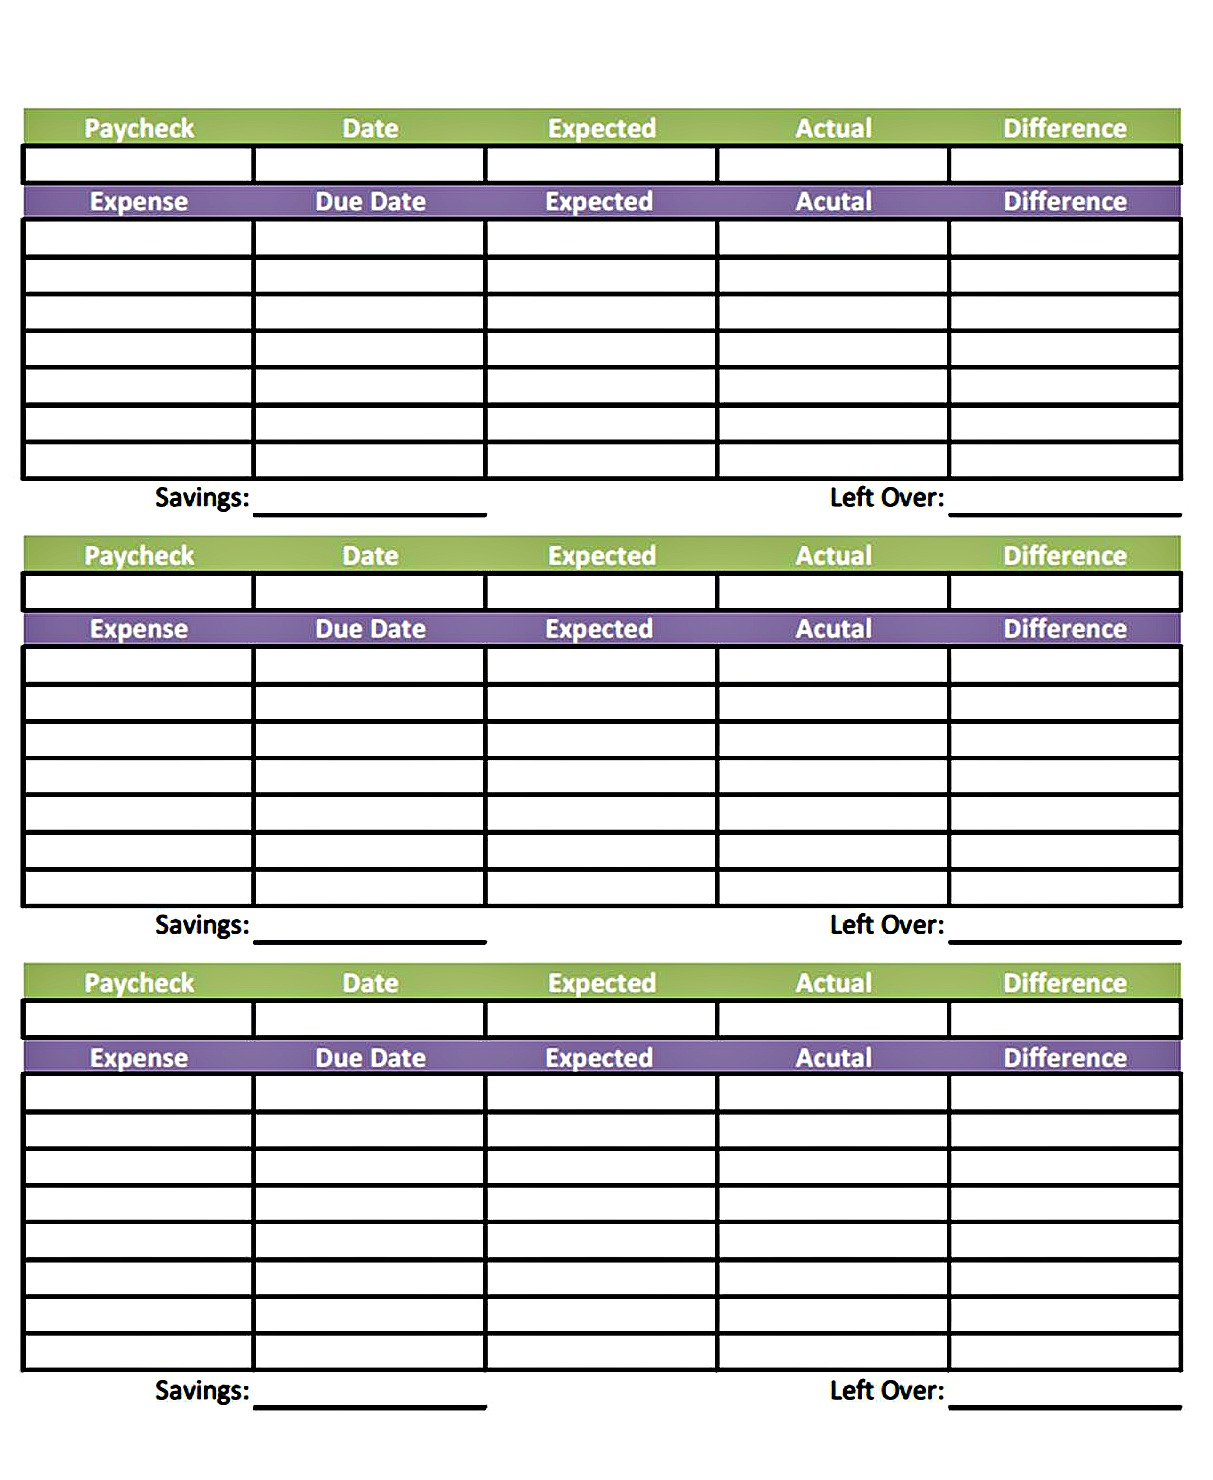 Bonfires and Wine Livin Paycheck to Paycheck Free Printable – Budget Form